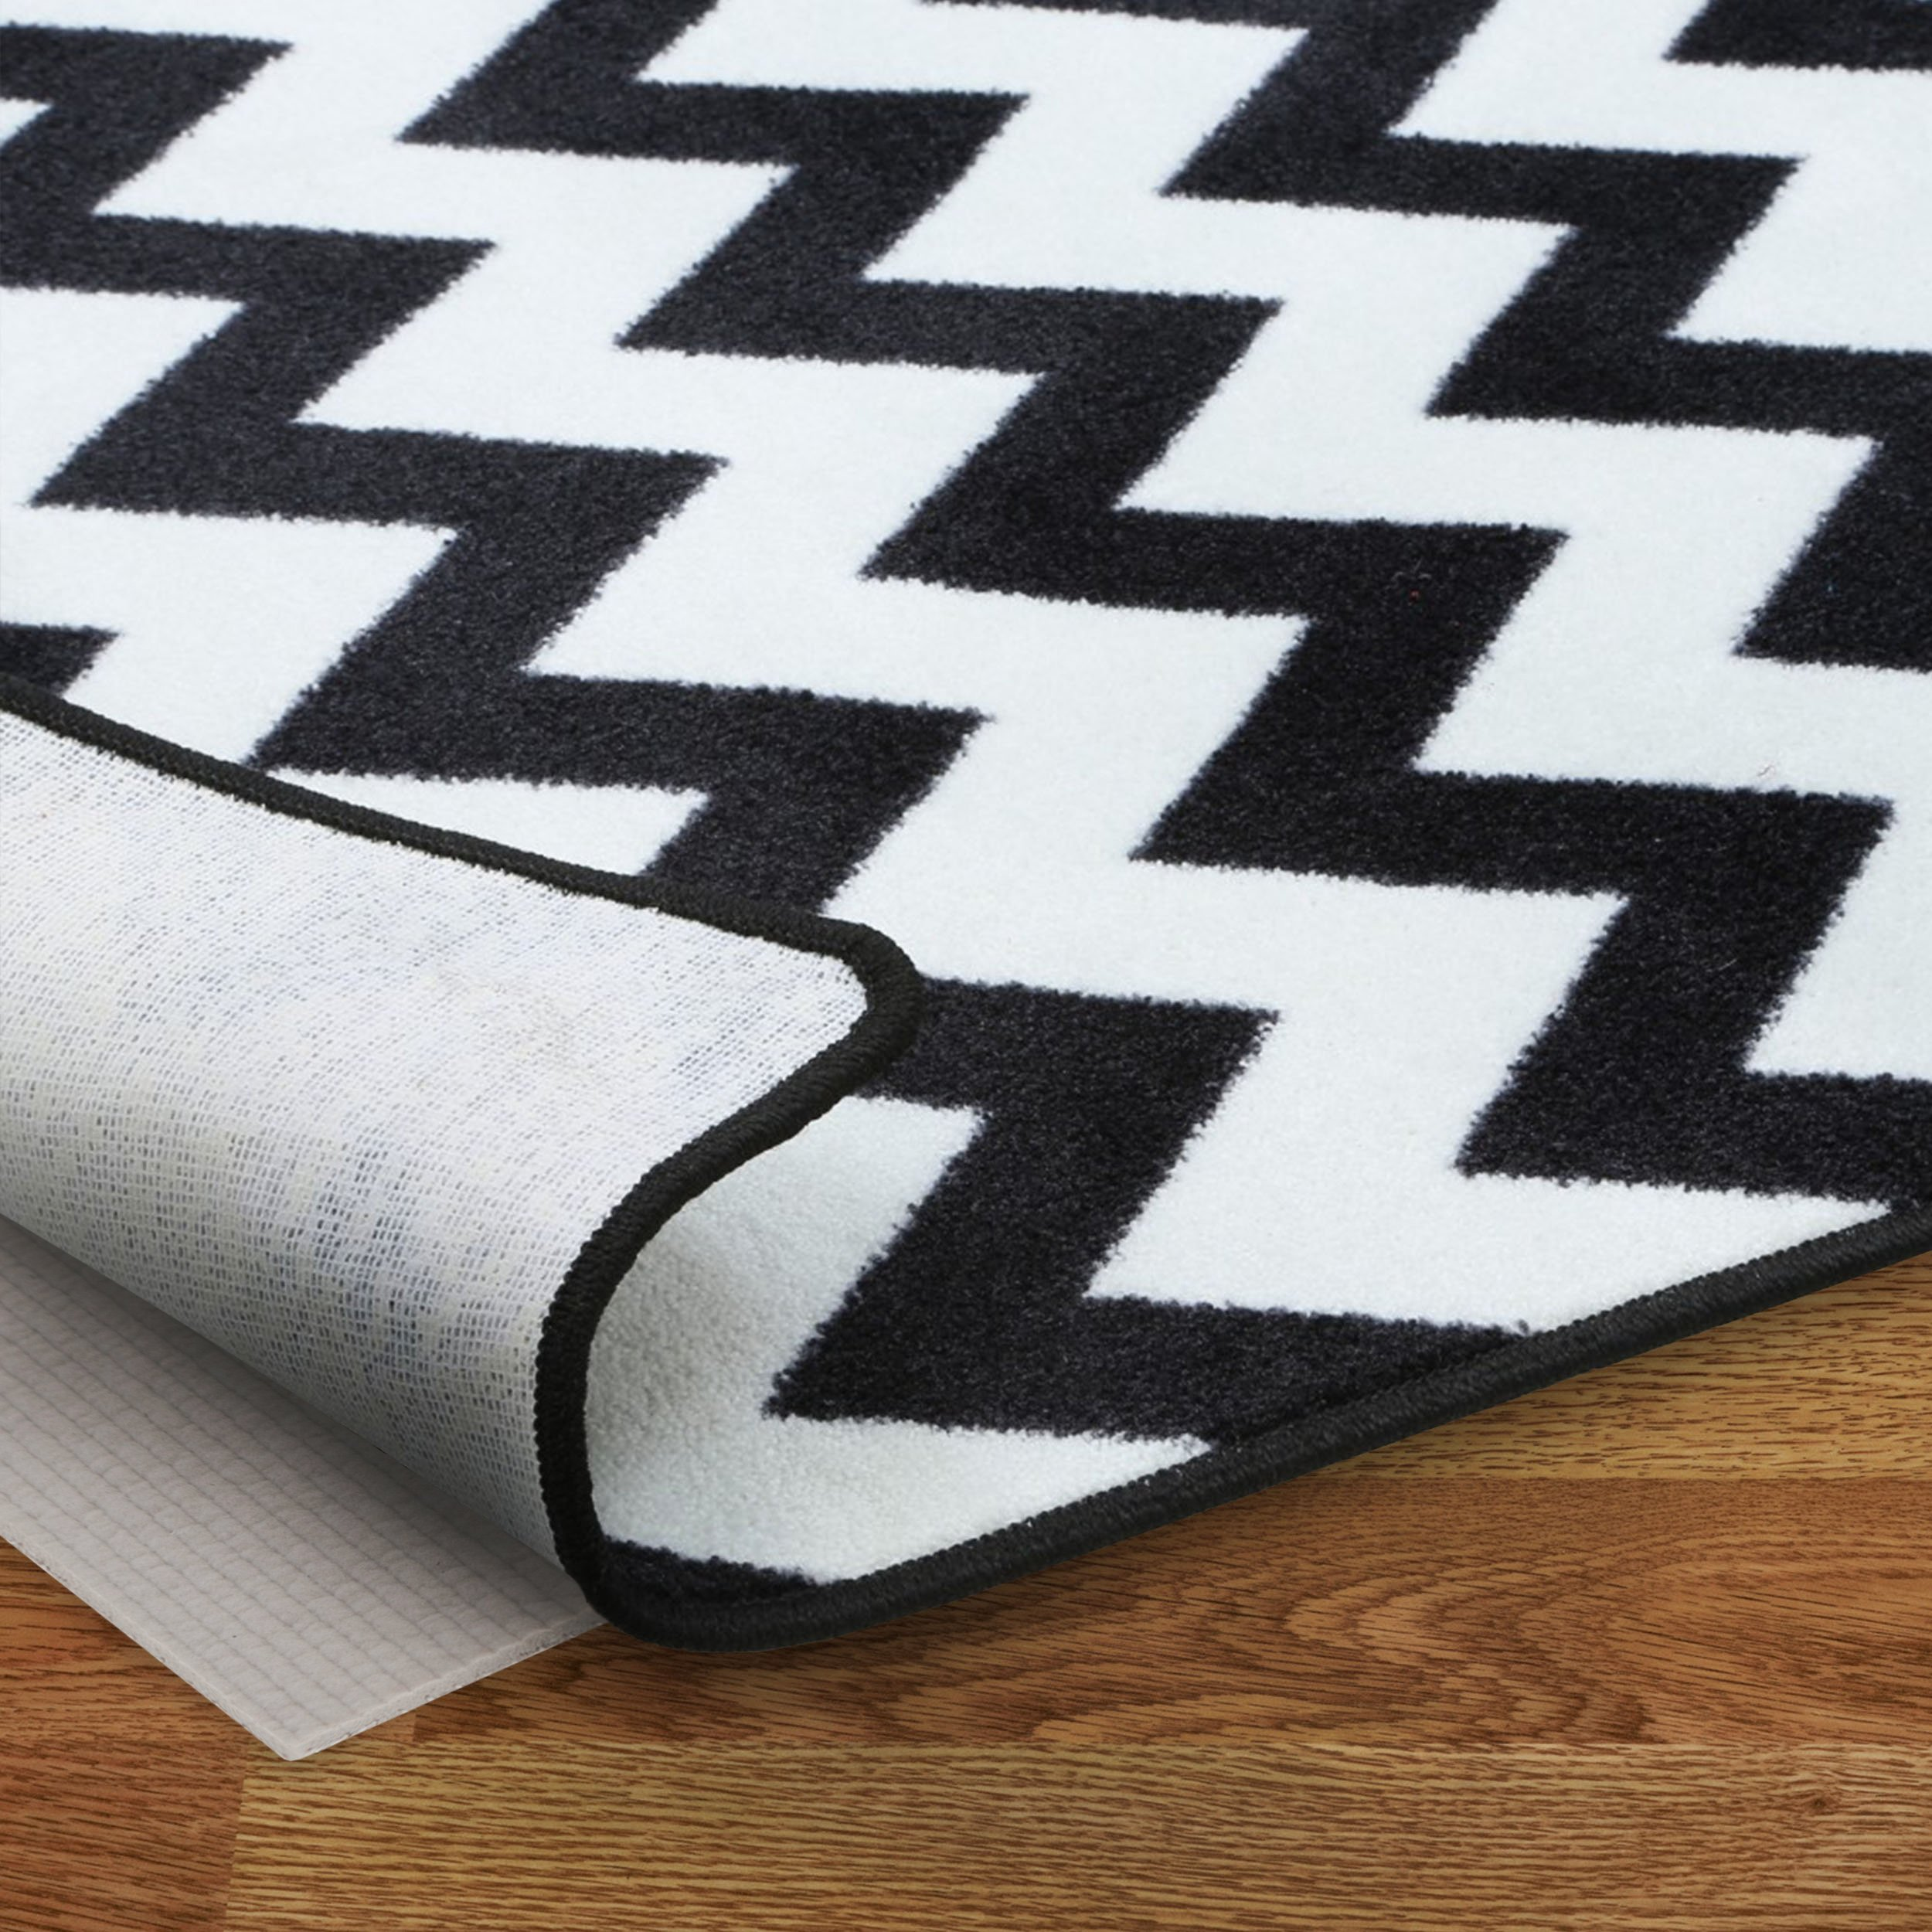 Non-Slip Rug Pad for Hardwood Floors - Textured Design Helps Prevent Slips and Protects Your Floor